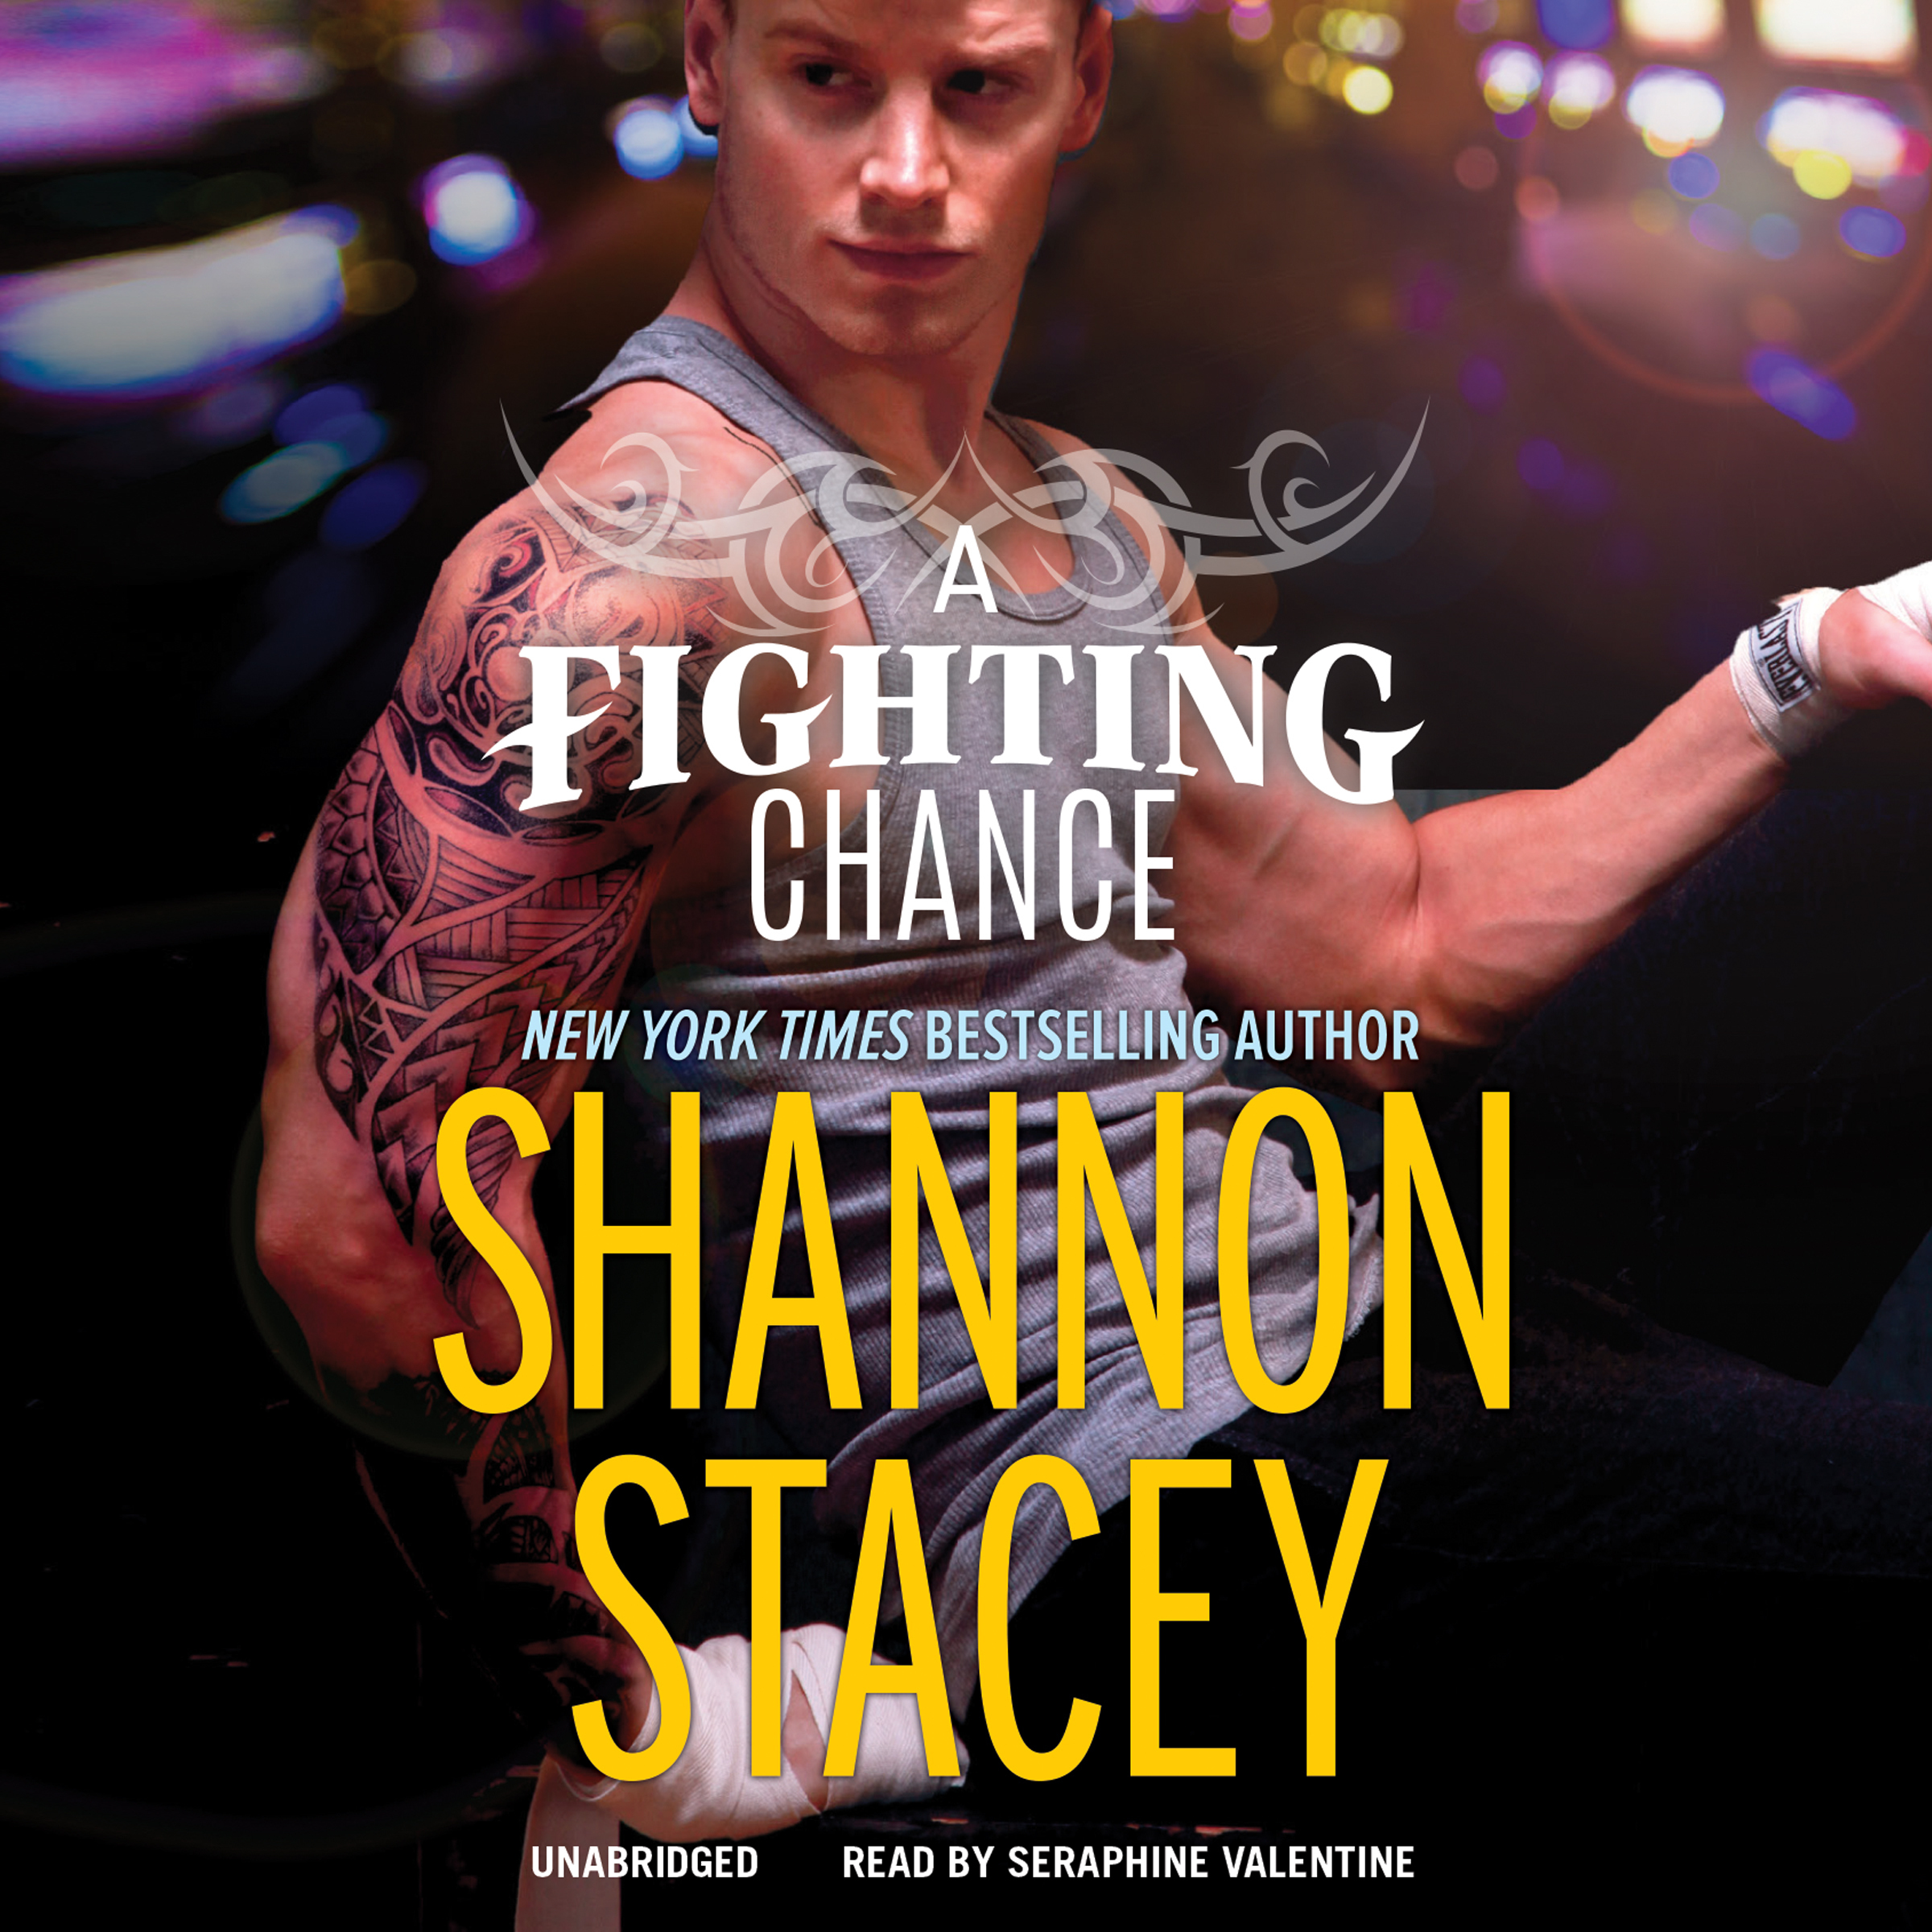 Printable A Fighting Chance Audiobook Cover Art